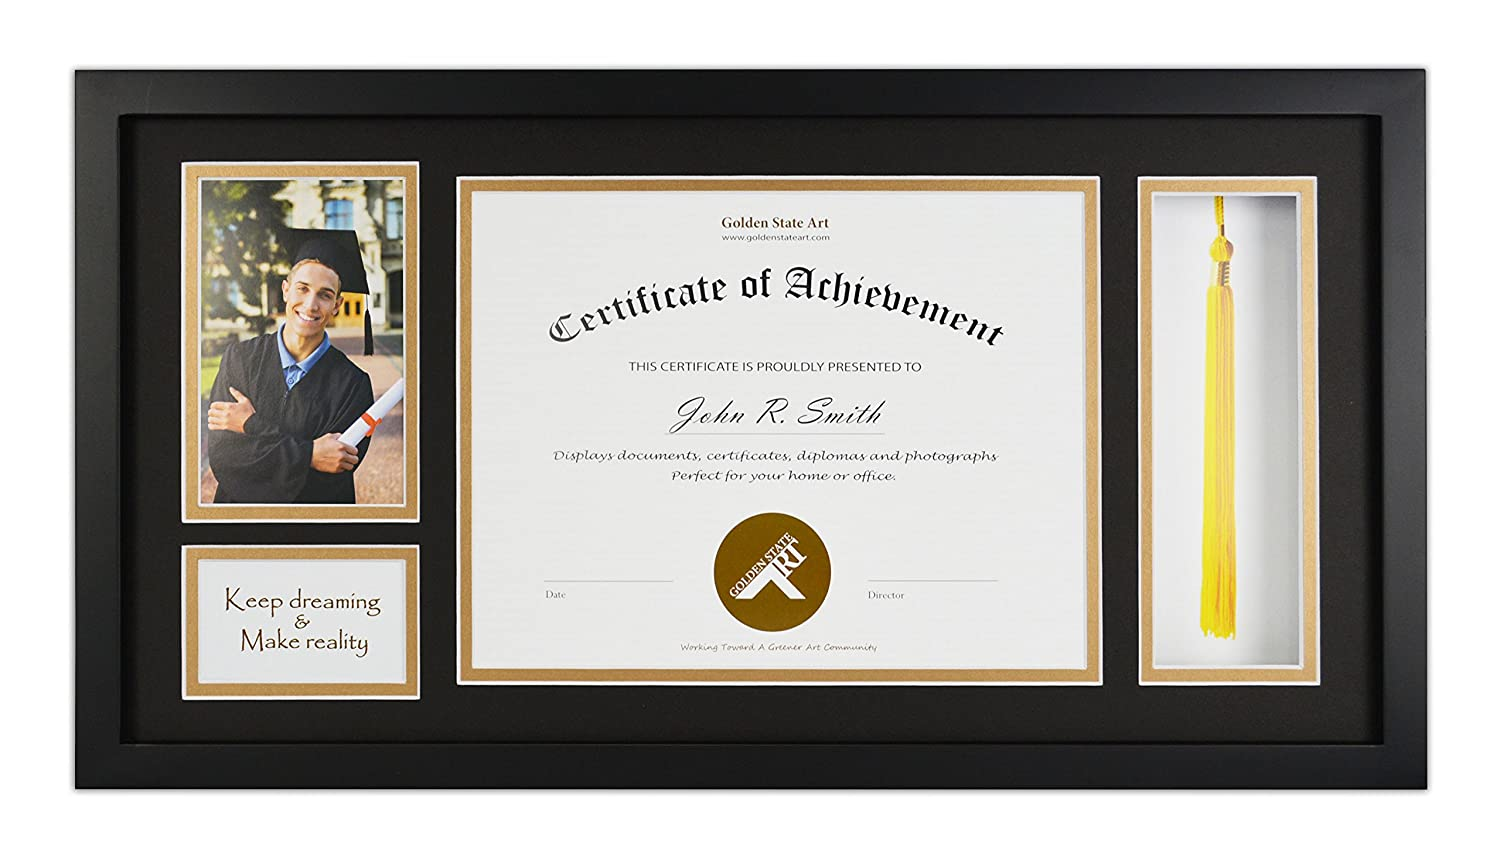 Golden State Art, Diploma Tassel Shadow Box 11x22 Frame for 8.5x11 Document/Certificate & 4x6 Photo, with Double Mat (Black Over Gold), Tassel Holder & Real Glass, Black